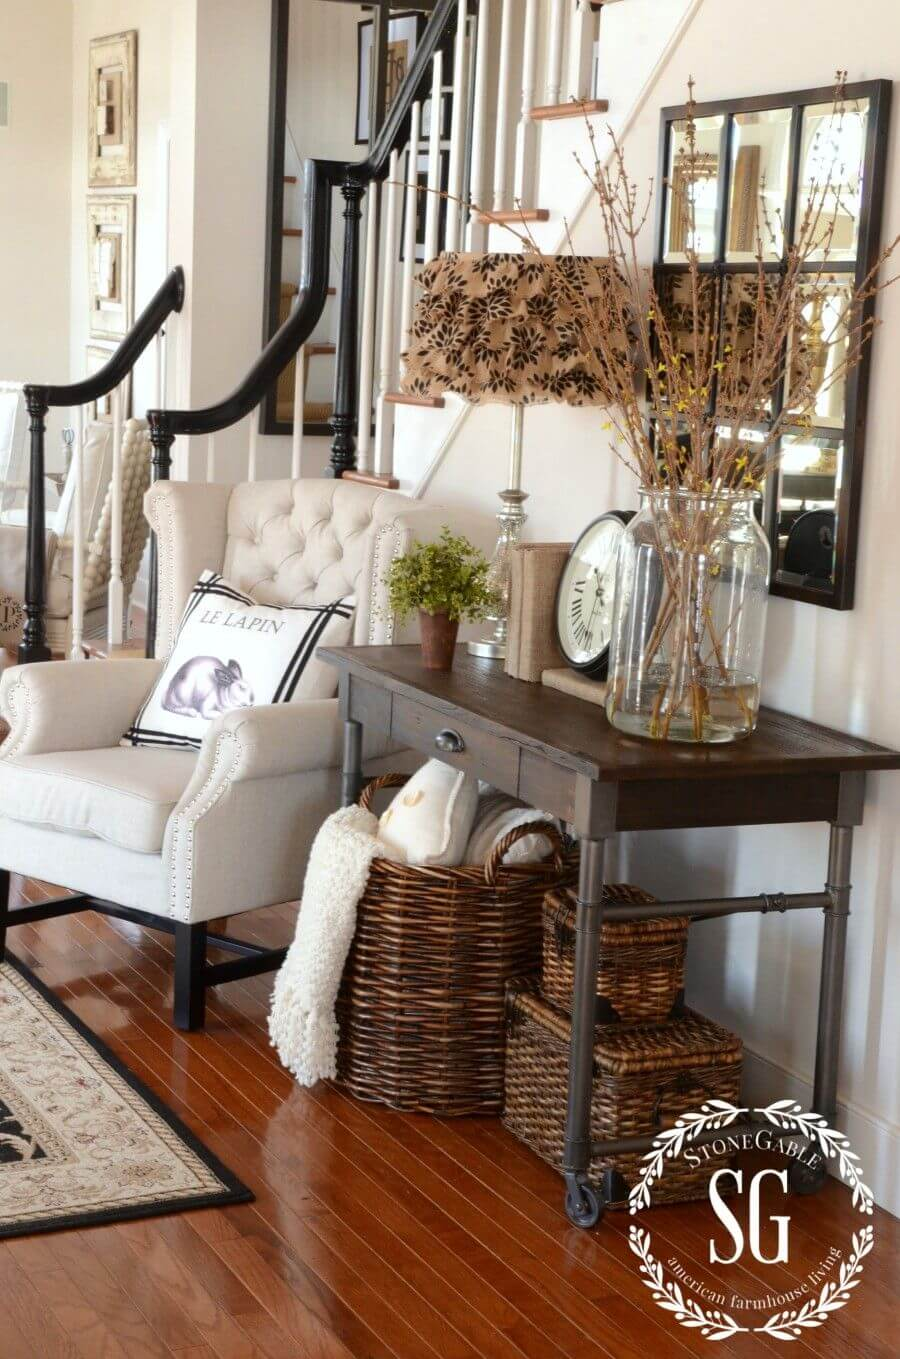 25+ Rustic Entryway Decorating Ideas That Everyone Will Love